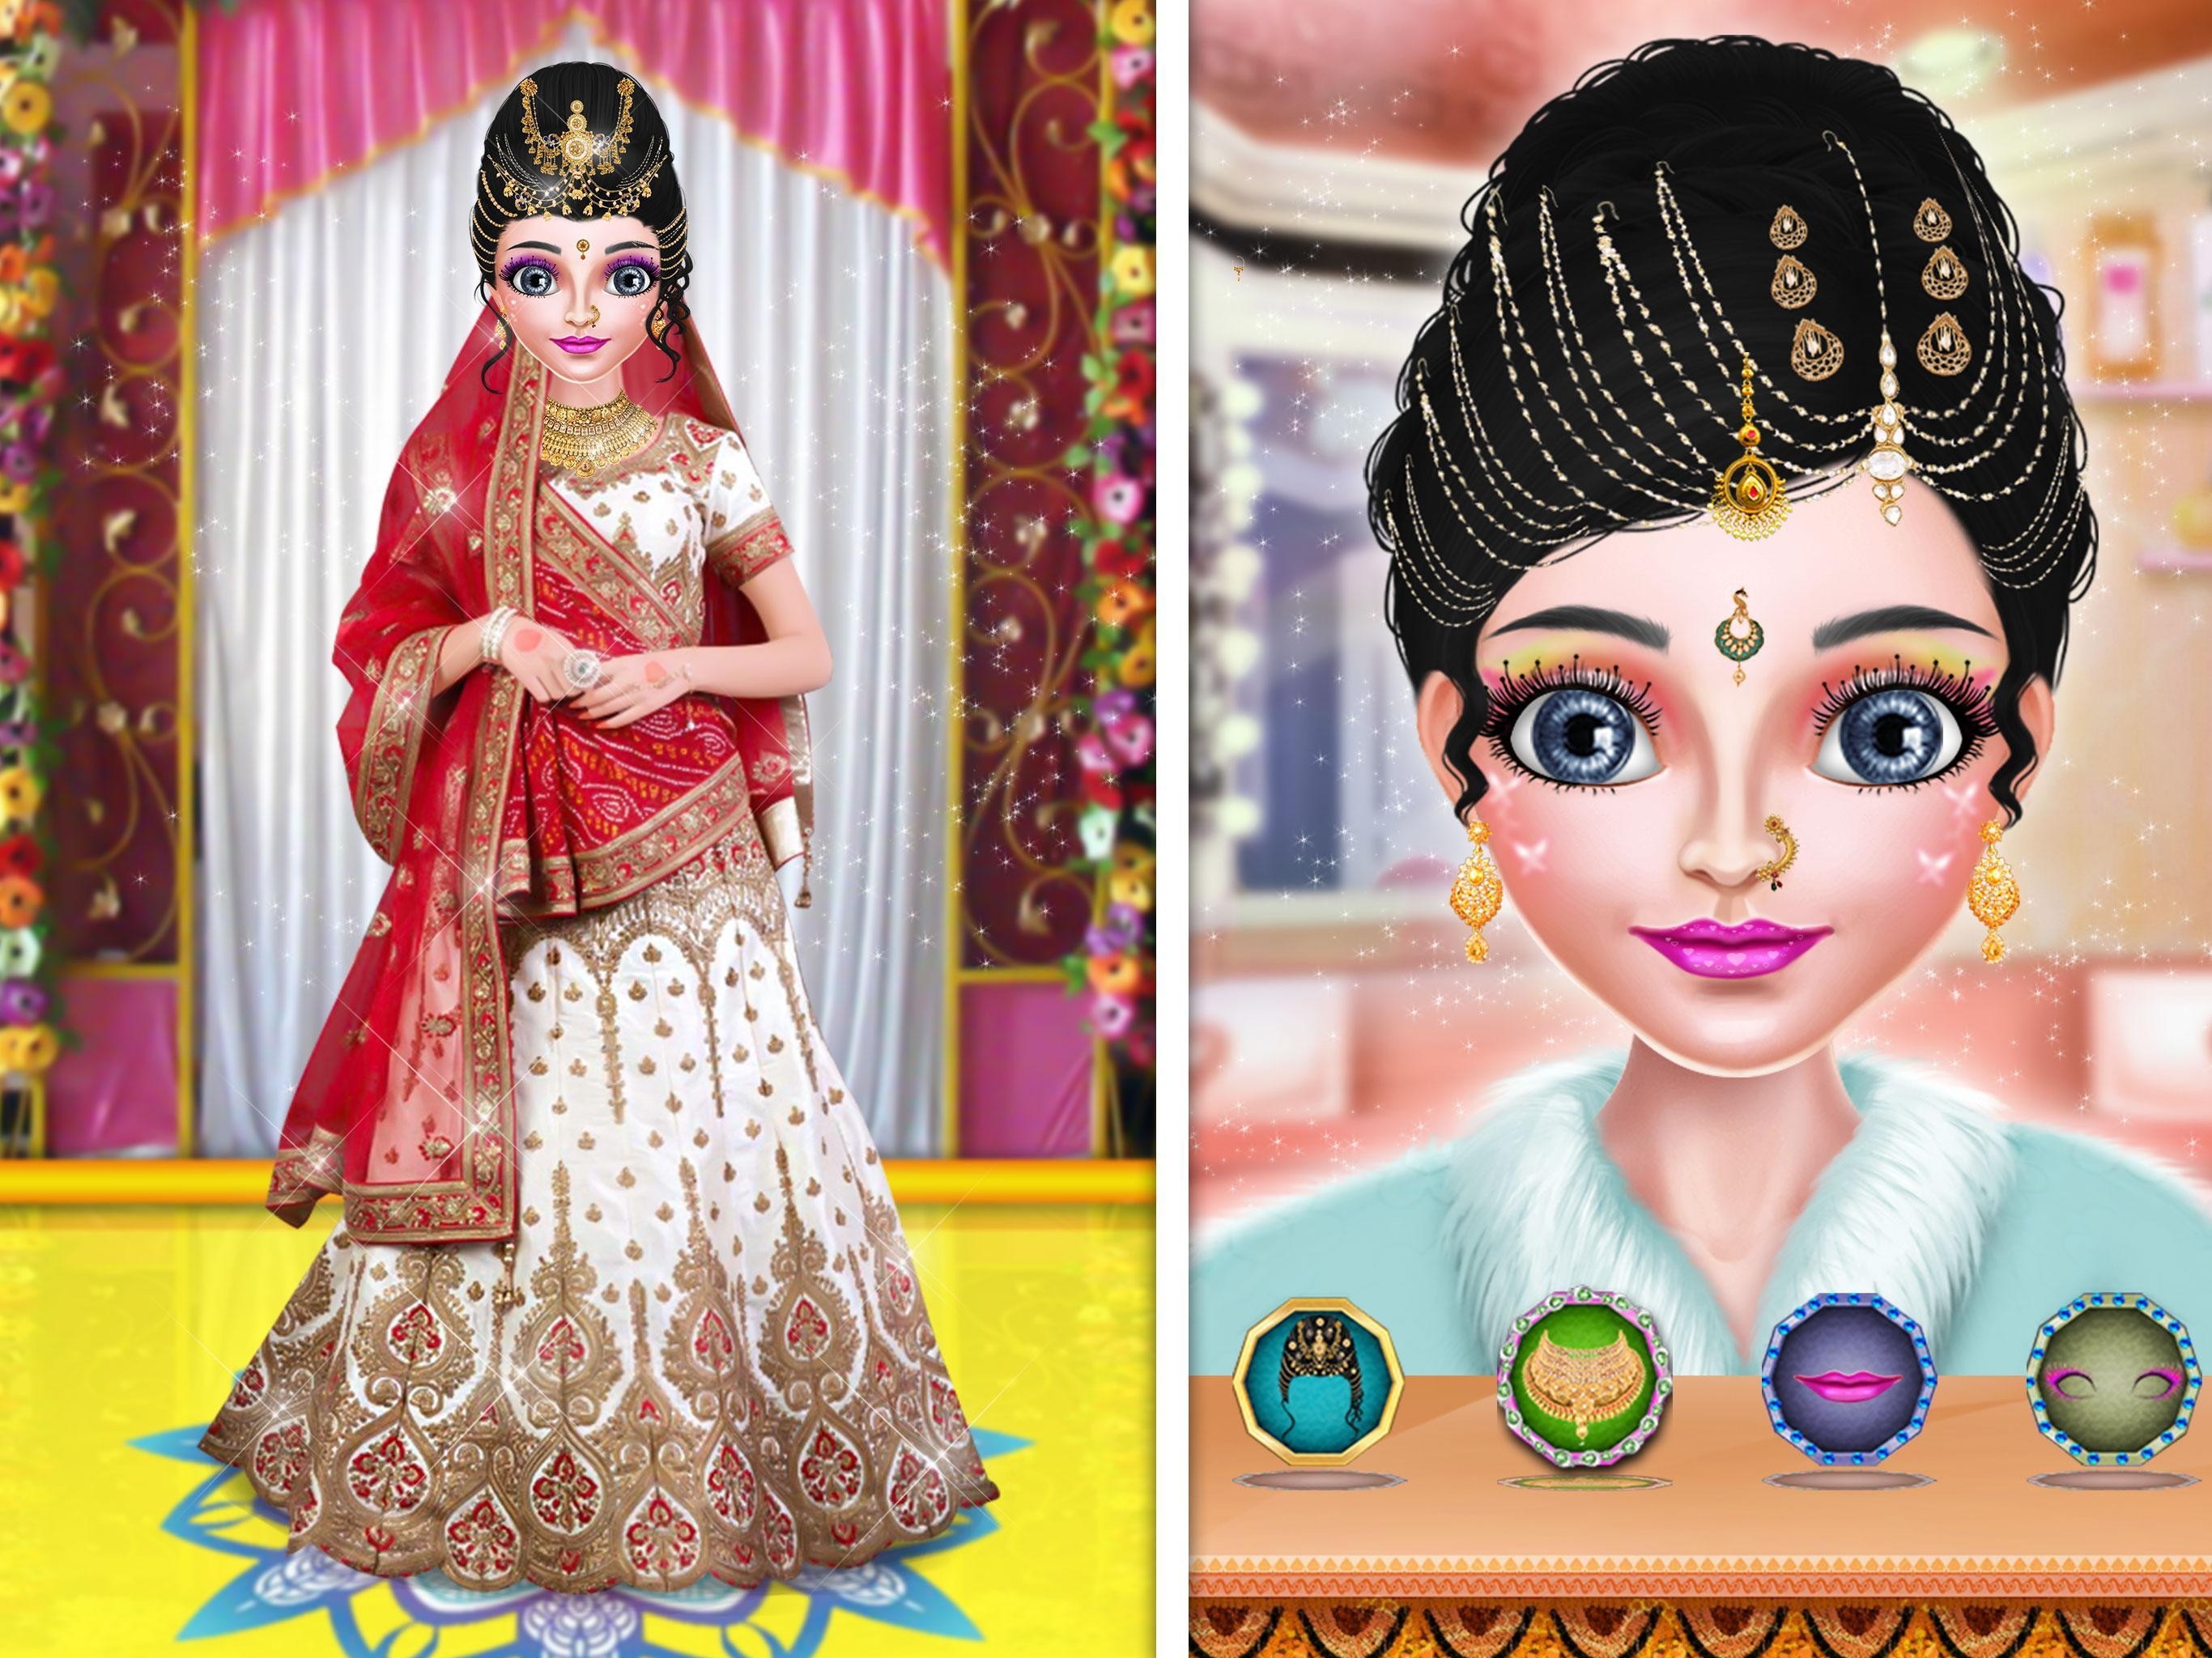 Royal Indian Girl Fashion Salon For Bride For Android Apk Download